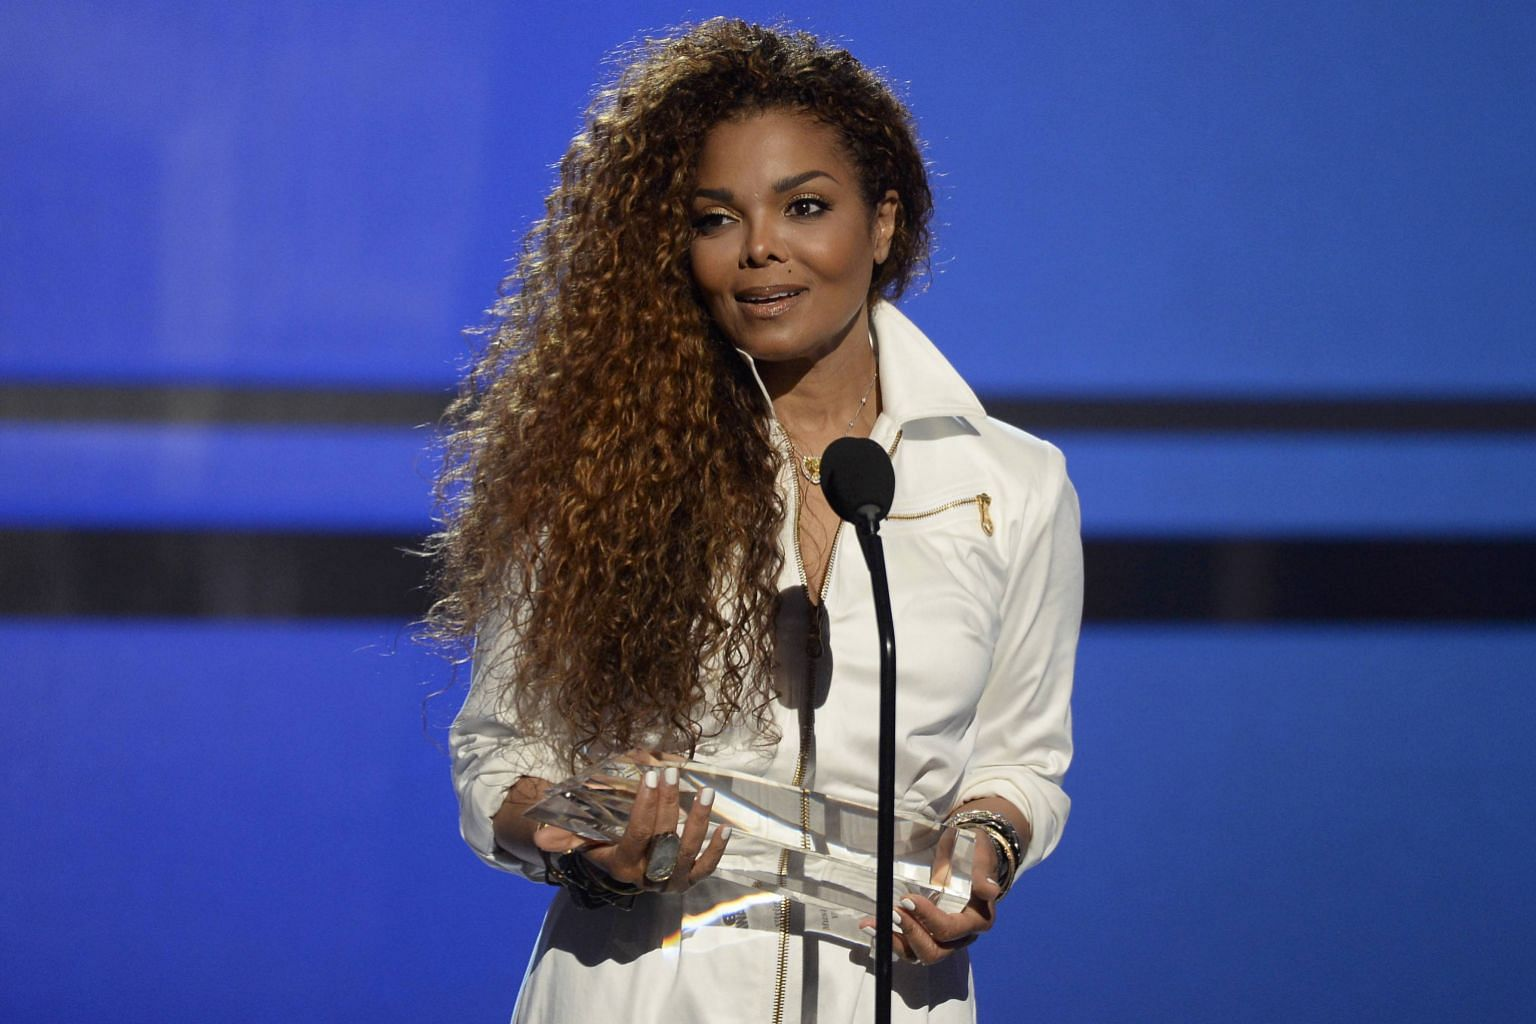 Winners all: Janet Jackson (above left) and Nicki Minaj at the BET Awards.